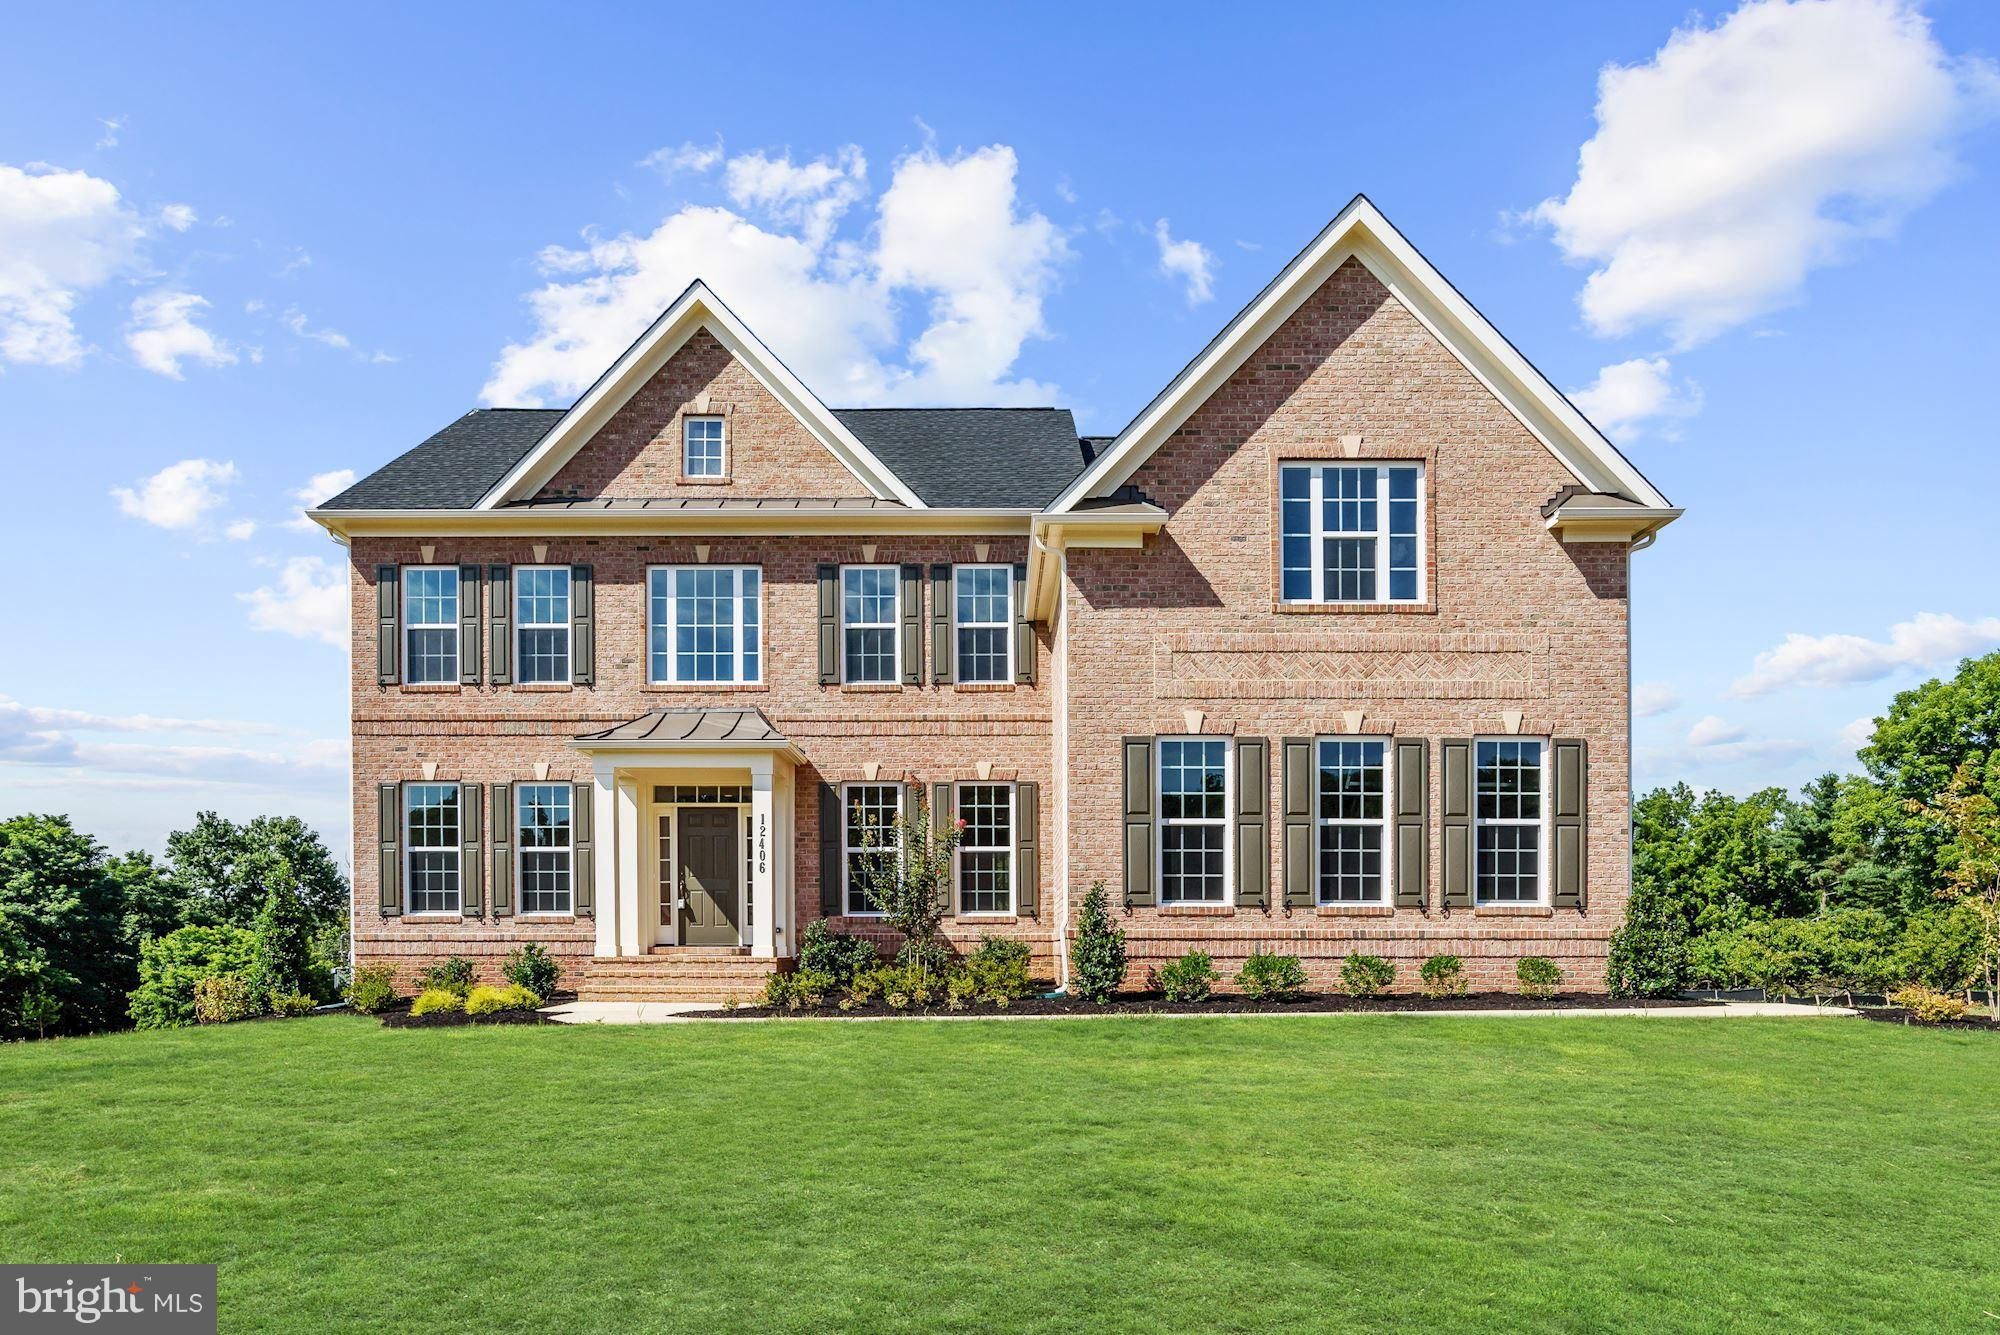 12406 ALL DAUGHTERS LANE, HIGHLAND, MD 20777